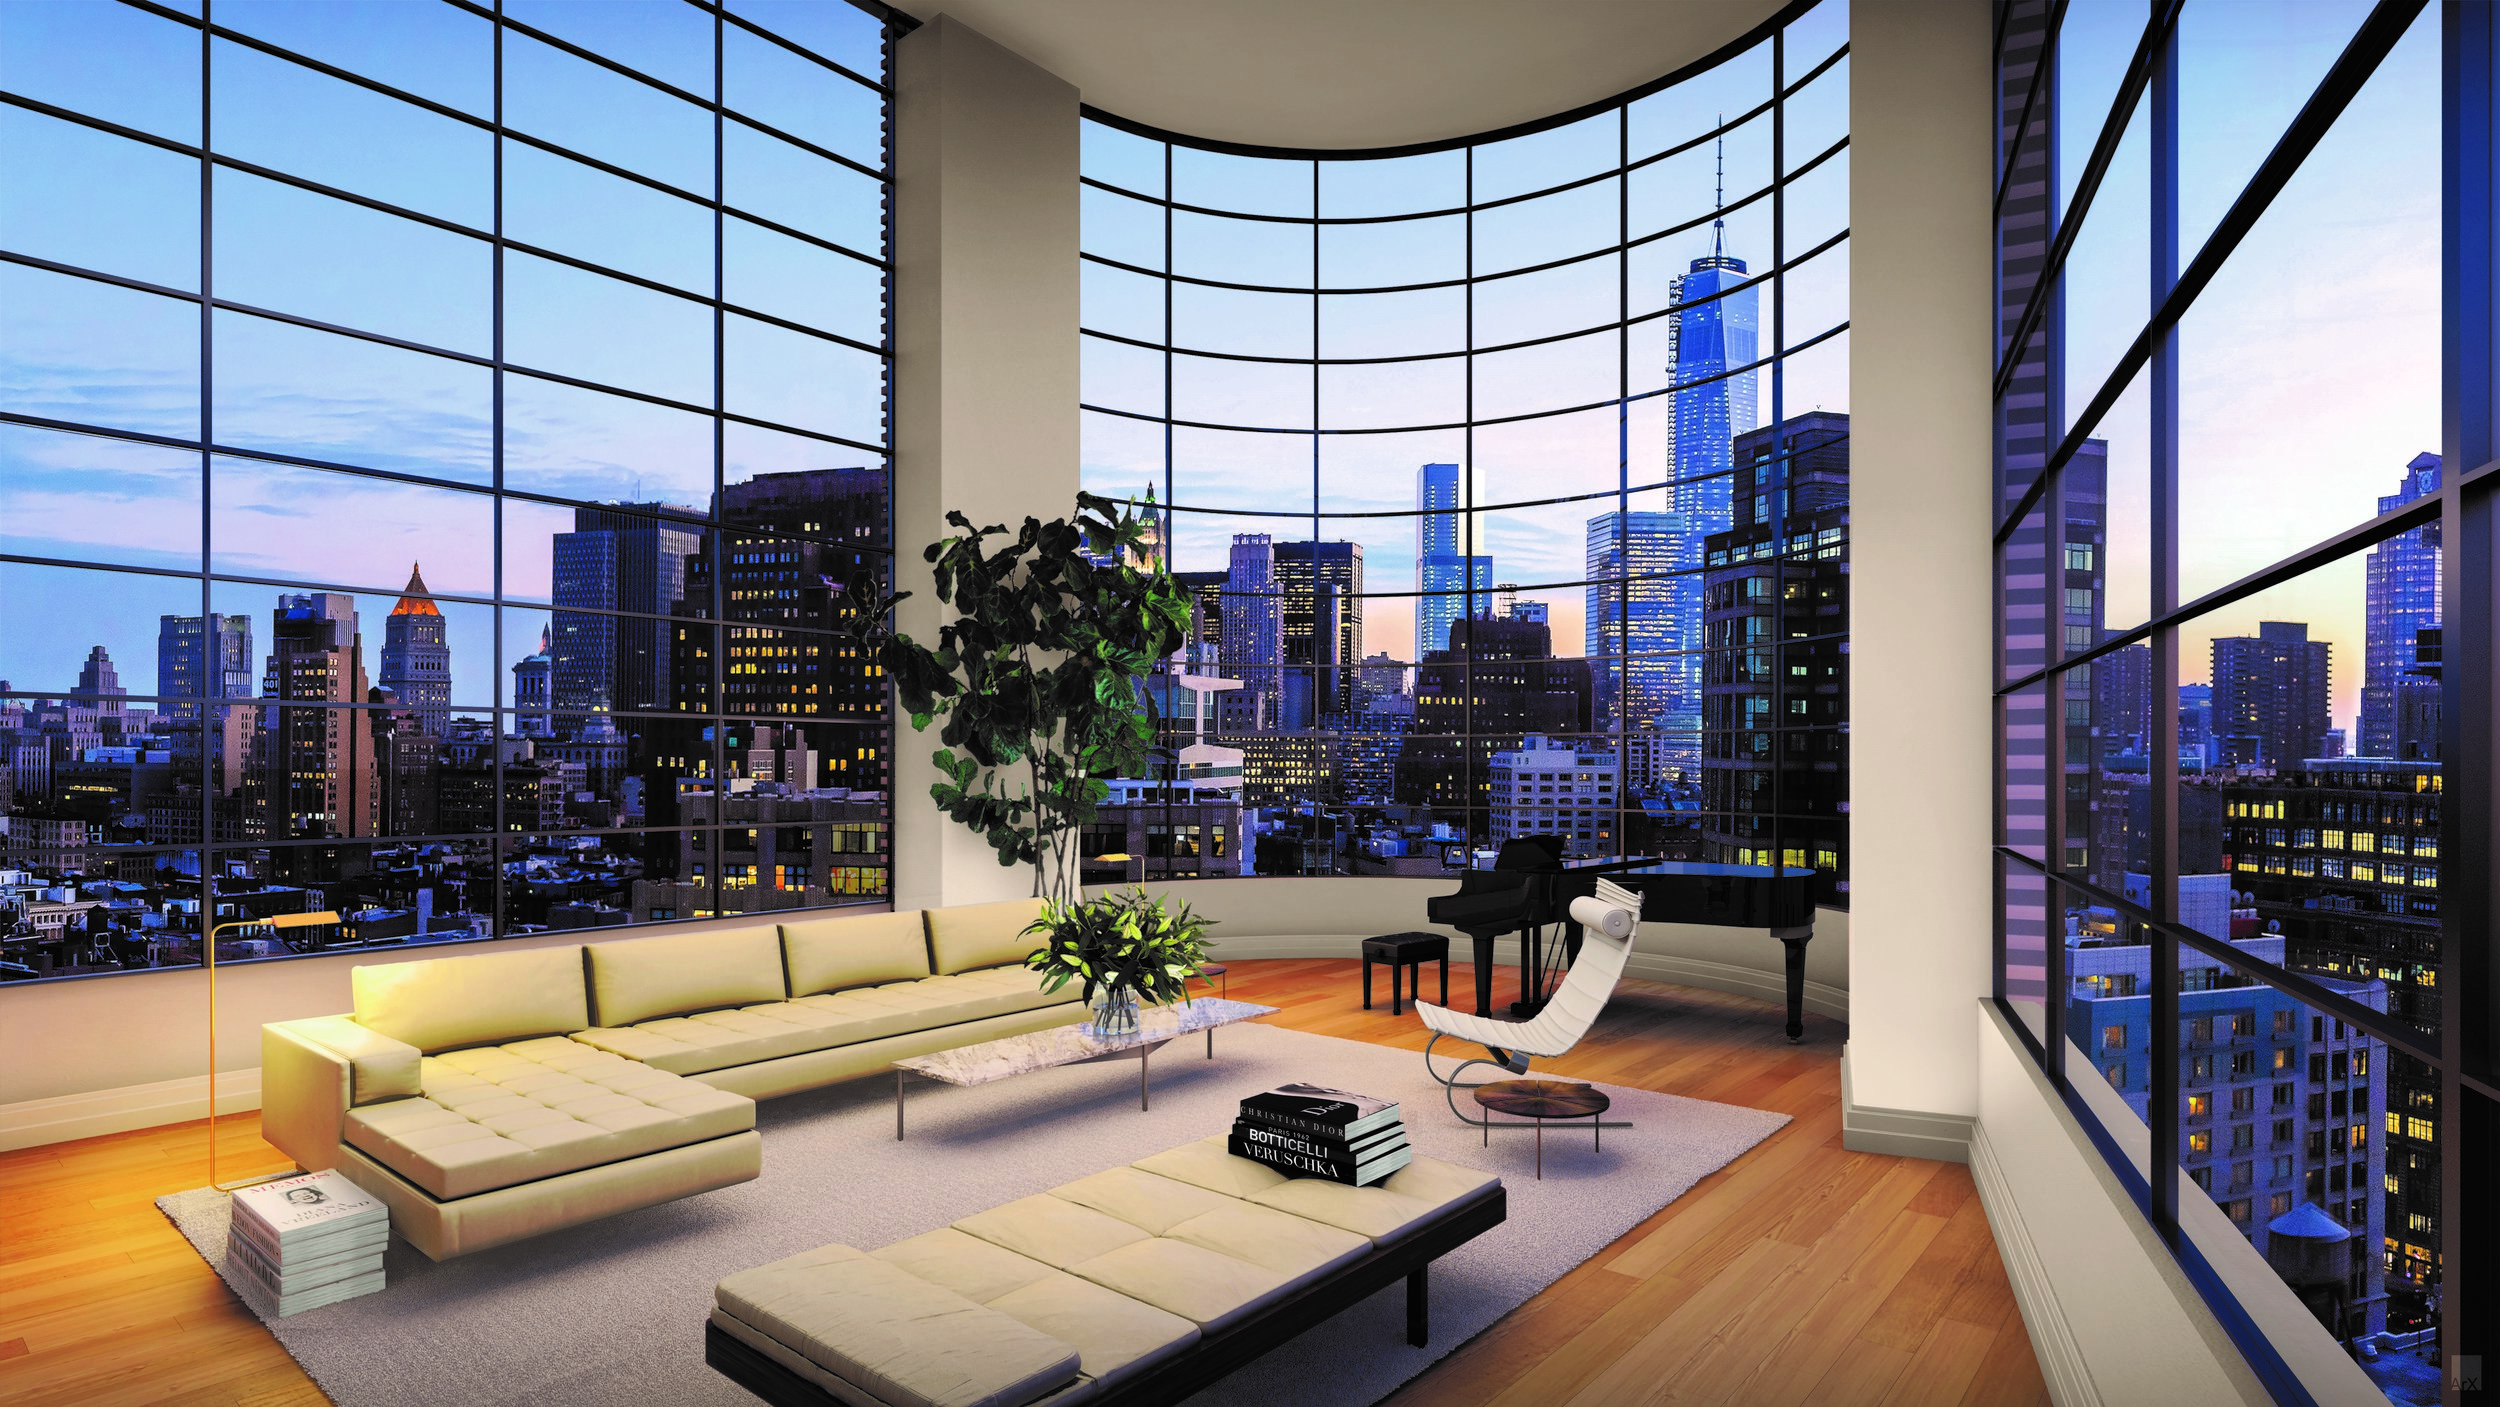 Penthouse_interior_New rendering.jpg